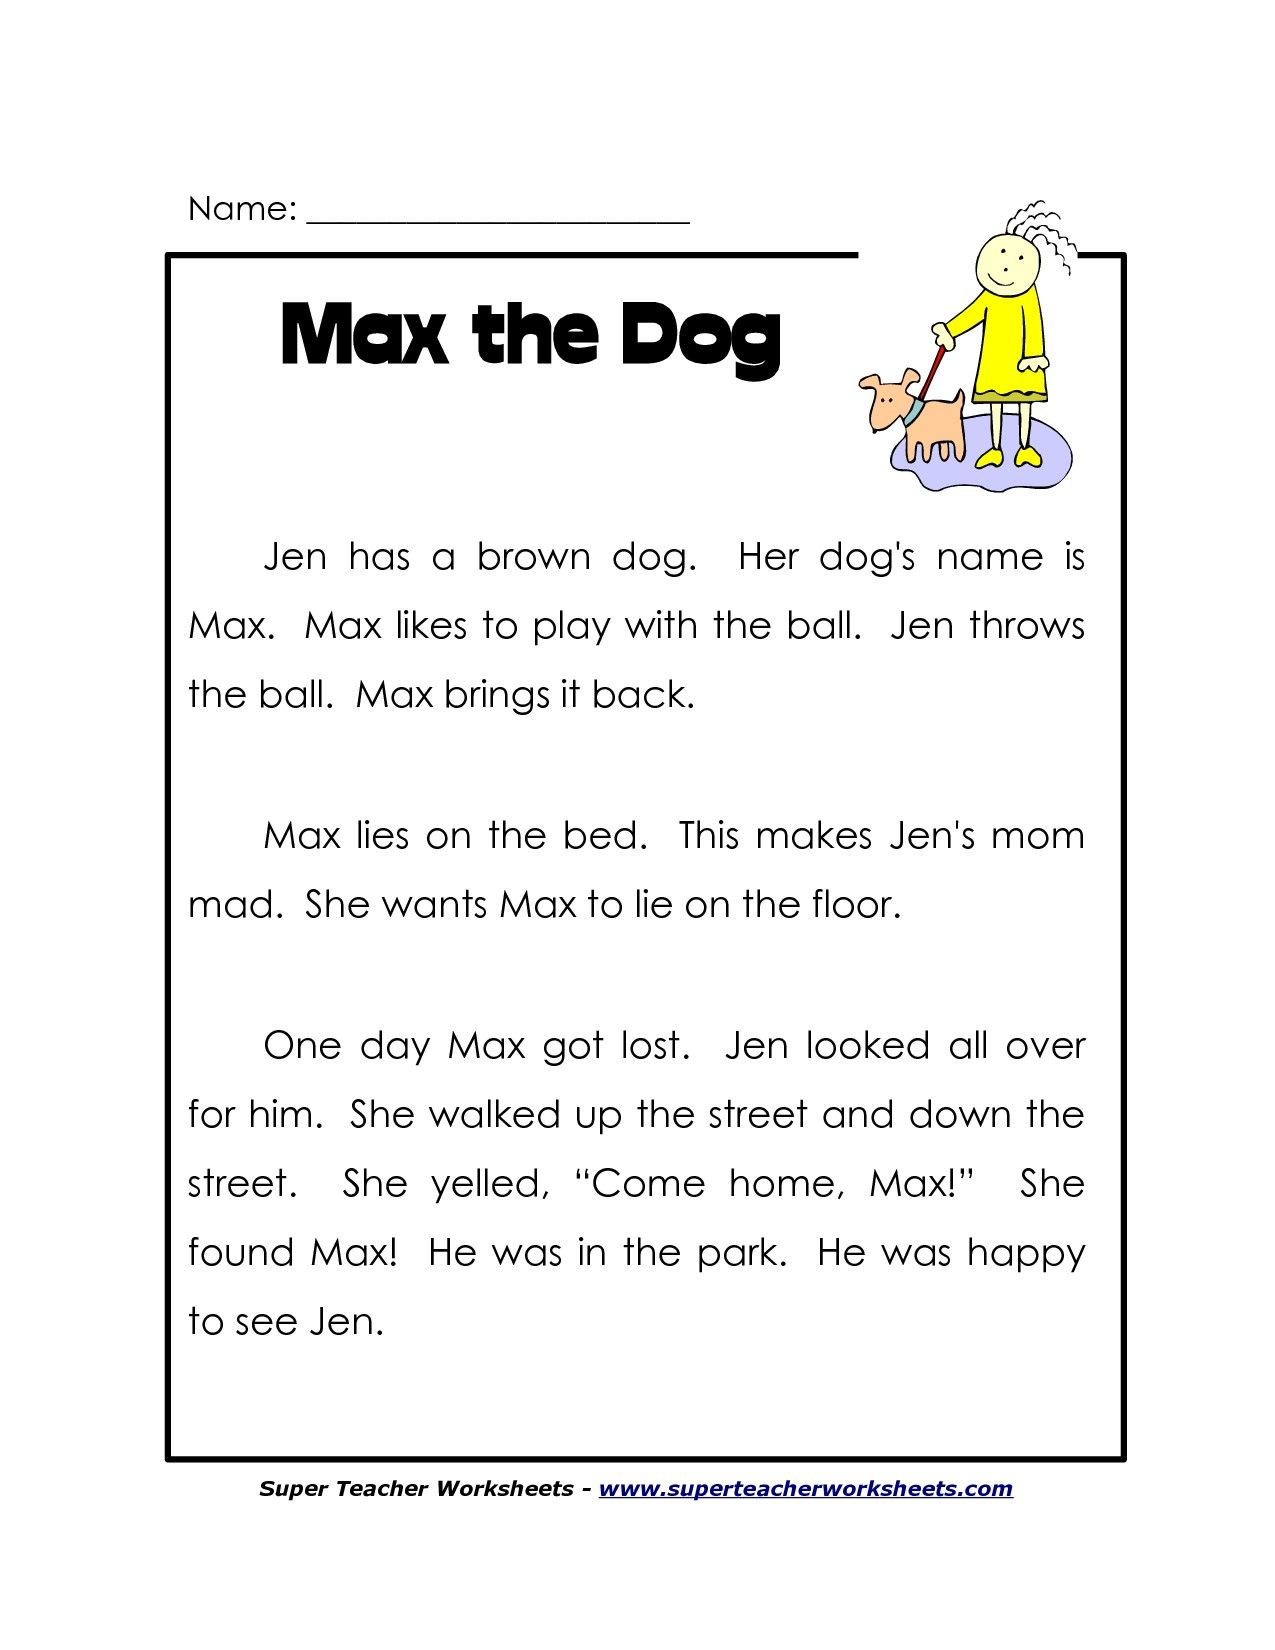 Sequencing Worksheets Graders Math Kindergarten Free Printable moreover  moreover free first grade reading pages – darlakemp club furthermore Grade Reading  prehension Worksheets 1st Printable in addition 5th grade reading worksheets free printable – unitetoeducate together with Free First Grade Reading Pages Fluency And  prehension Printa moreover Free Reading  prehension Worksheets   Printable   K5 Learning as well free first grade worksheets in addition  moreover 1st grade reading worksheets pdf as well 1st Grade Halloween Reading Worksheet by The Joyful Teacher   TpT moreover free printable 3rd grade reading worksheets – beautilife info besides Free Grade Reading  prehension Worksheets Printable Reading Free as well Free First Grade Reading Worksheets 4th  prehension Test Pdf as well  additionally 1st Grade Reading Worksheets Free  Lots more on. on free first grade reading worksheets